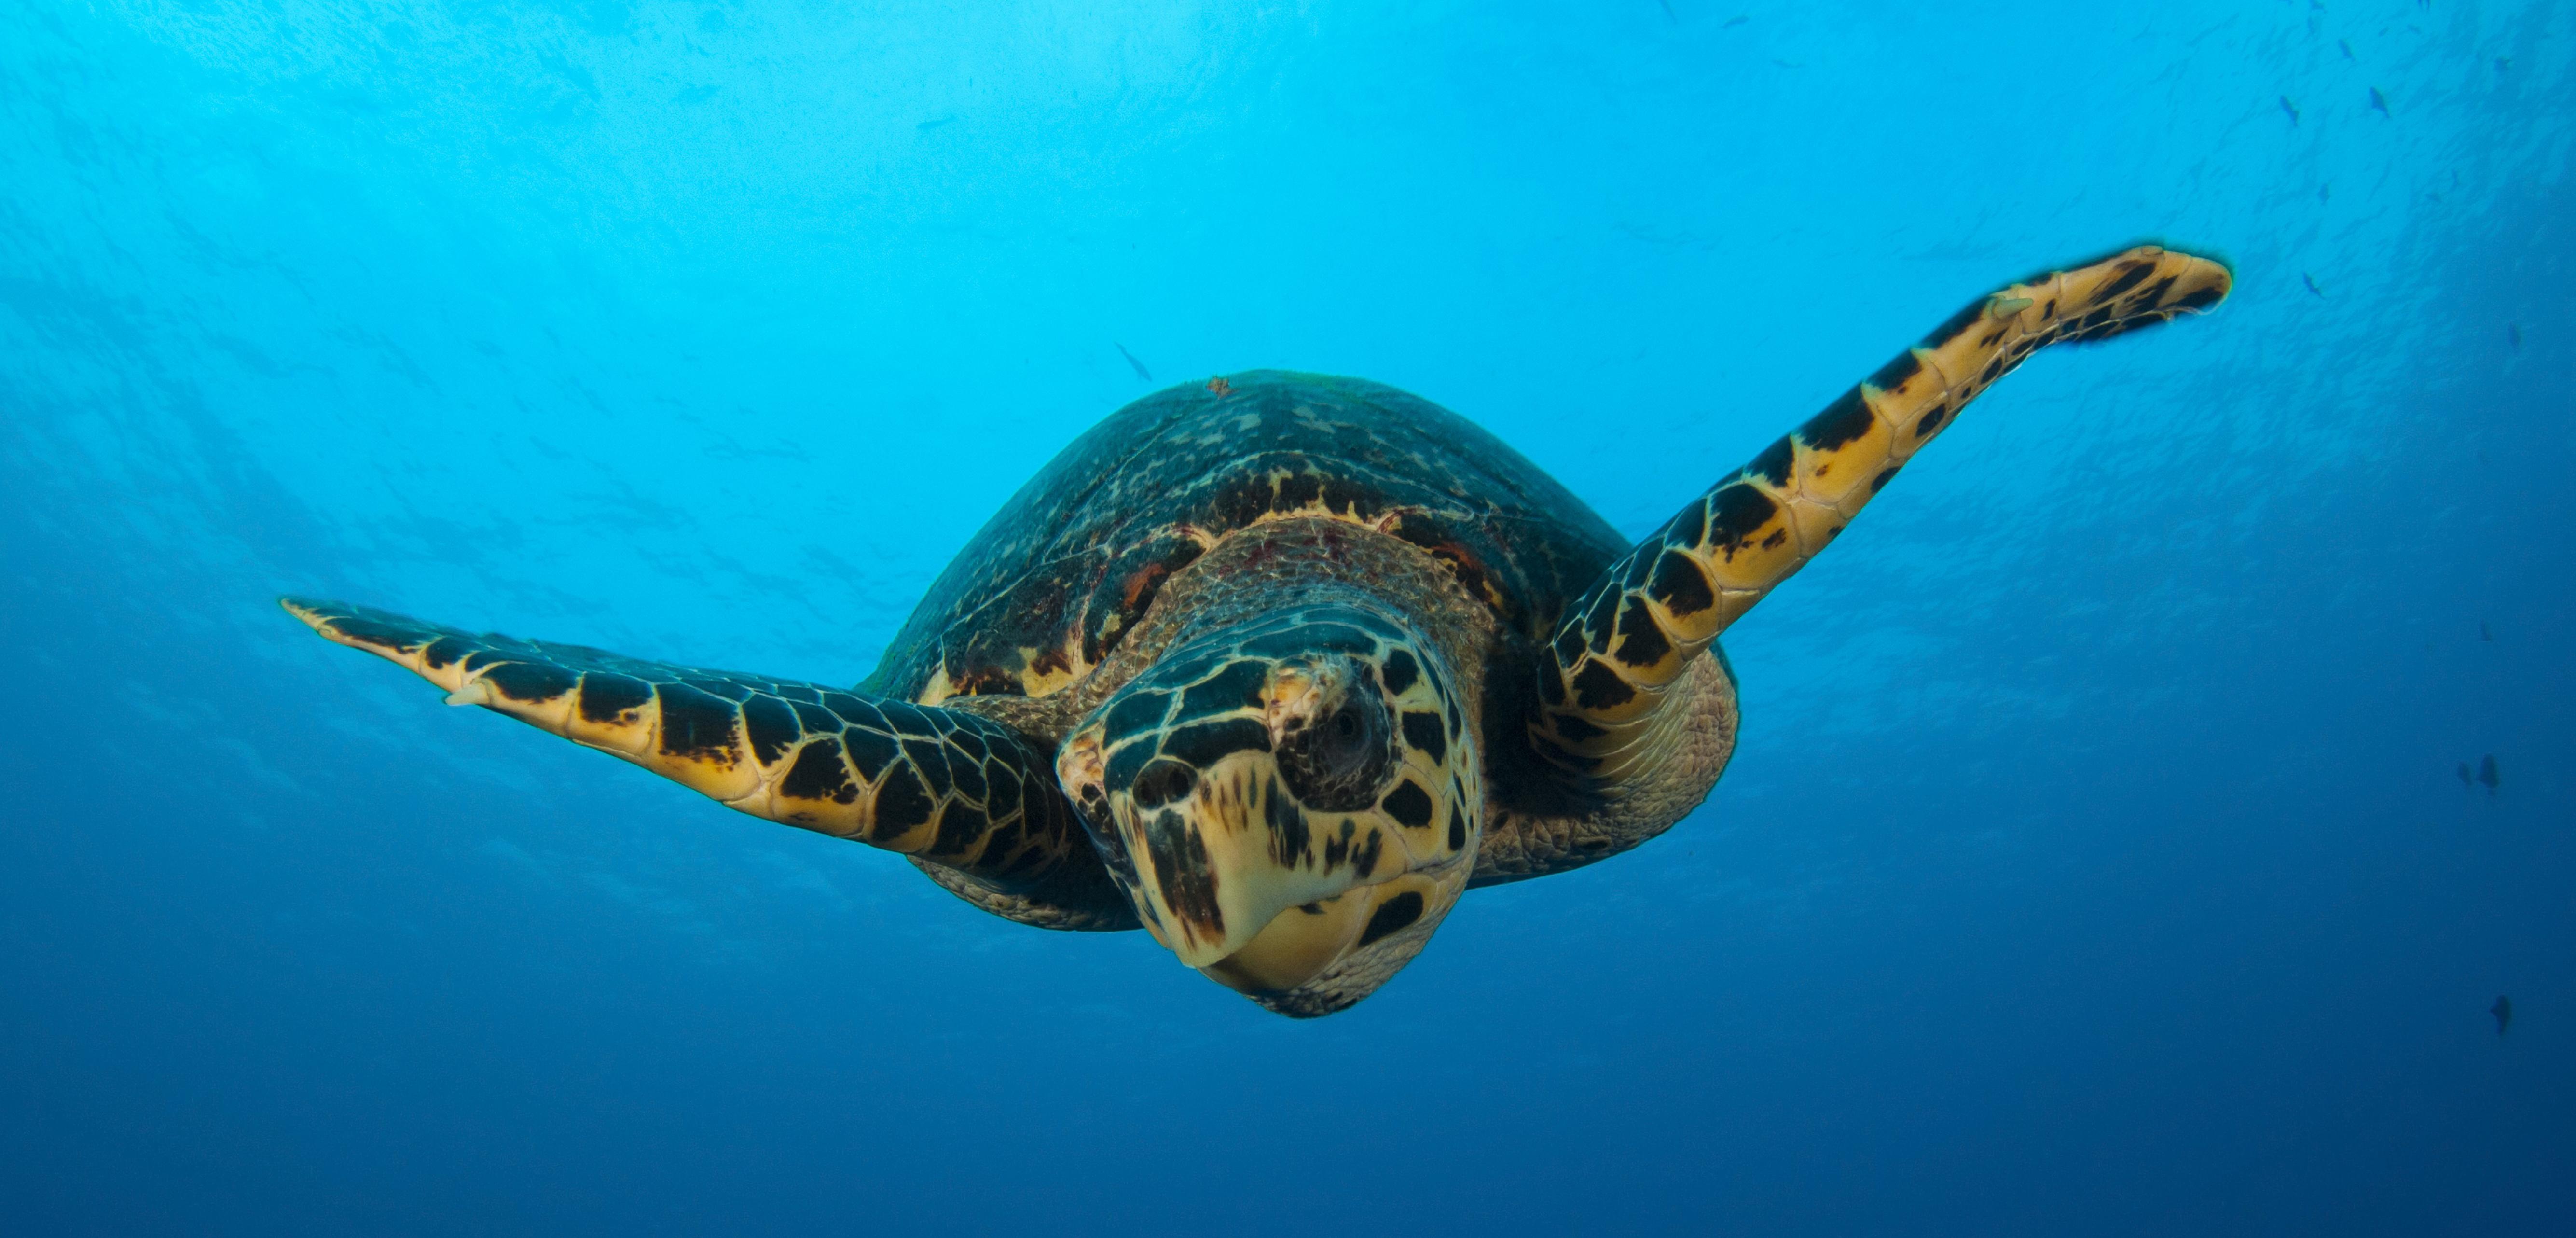 There are new laws in place to protect Turks and Caicos' hawksbill sea turtles. Now the question is whether they'll make a difference. Photo by Steve Jones/Stocktrek Images/Corbis